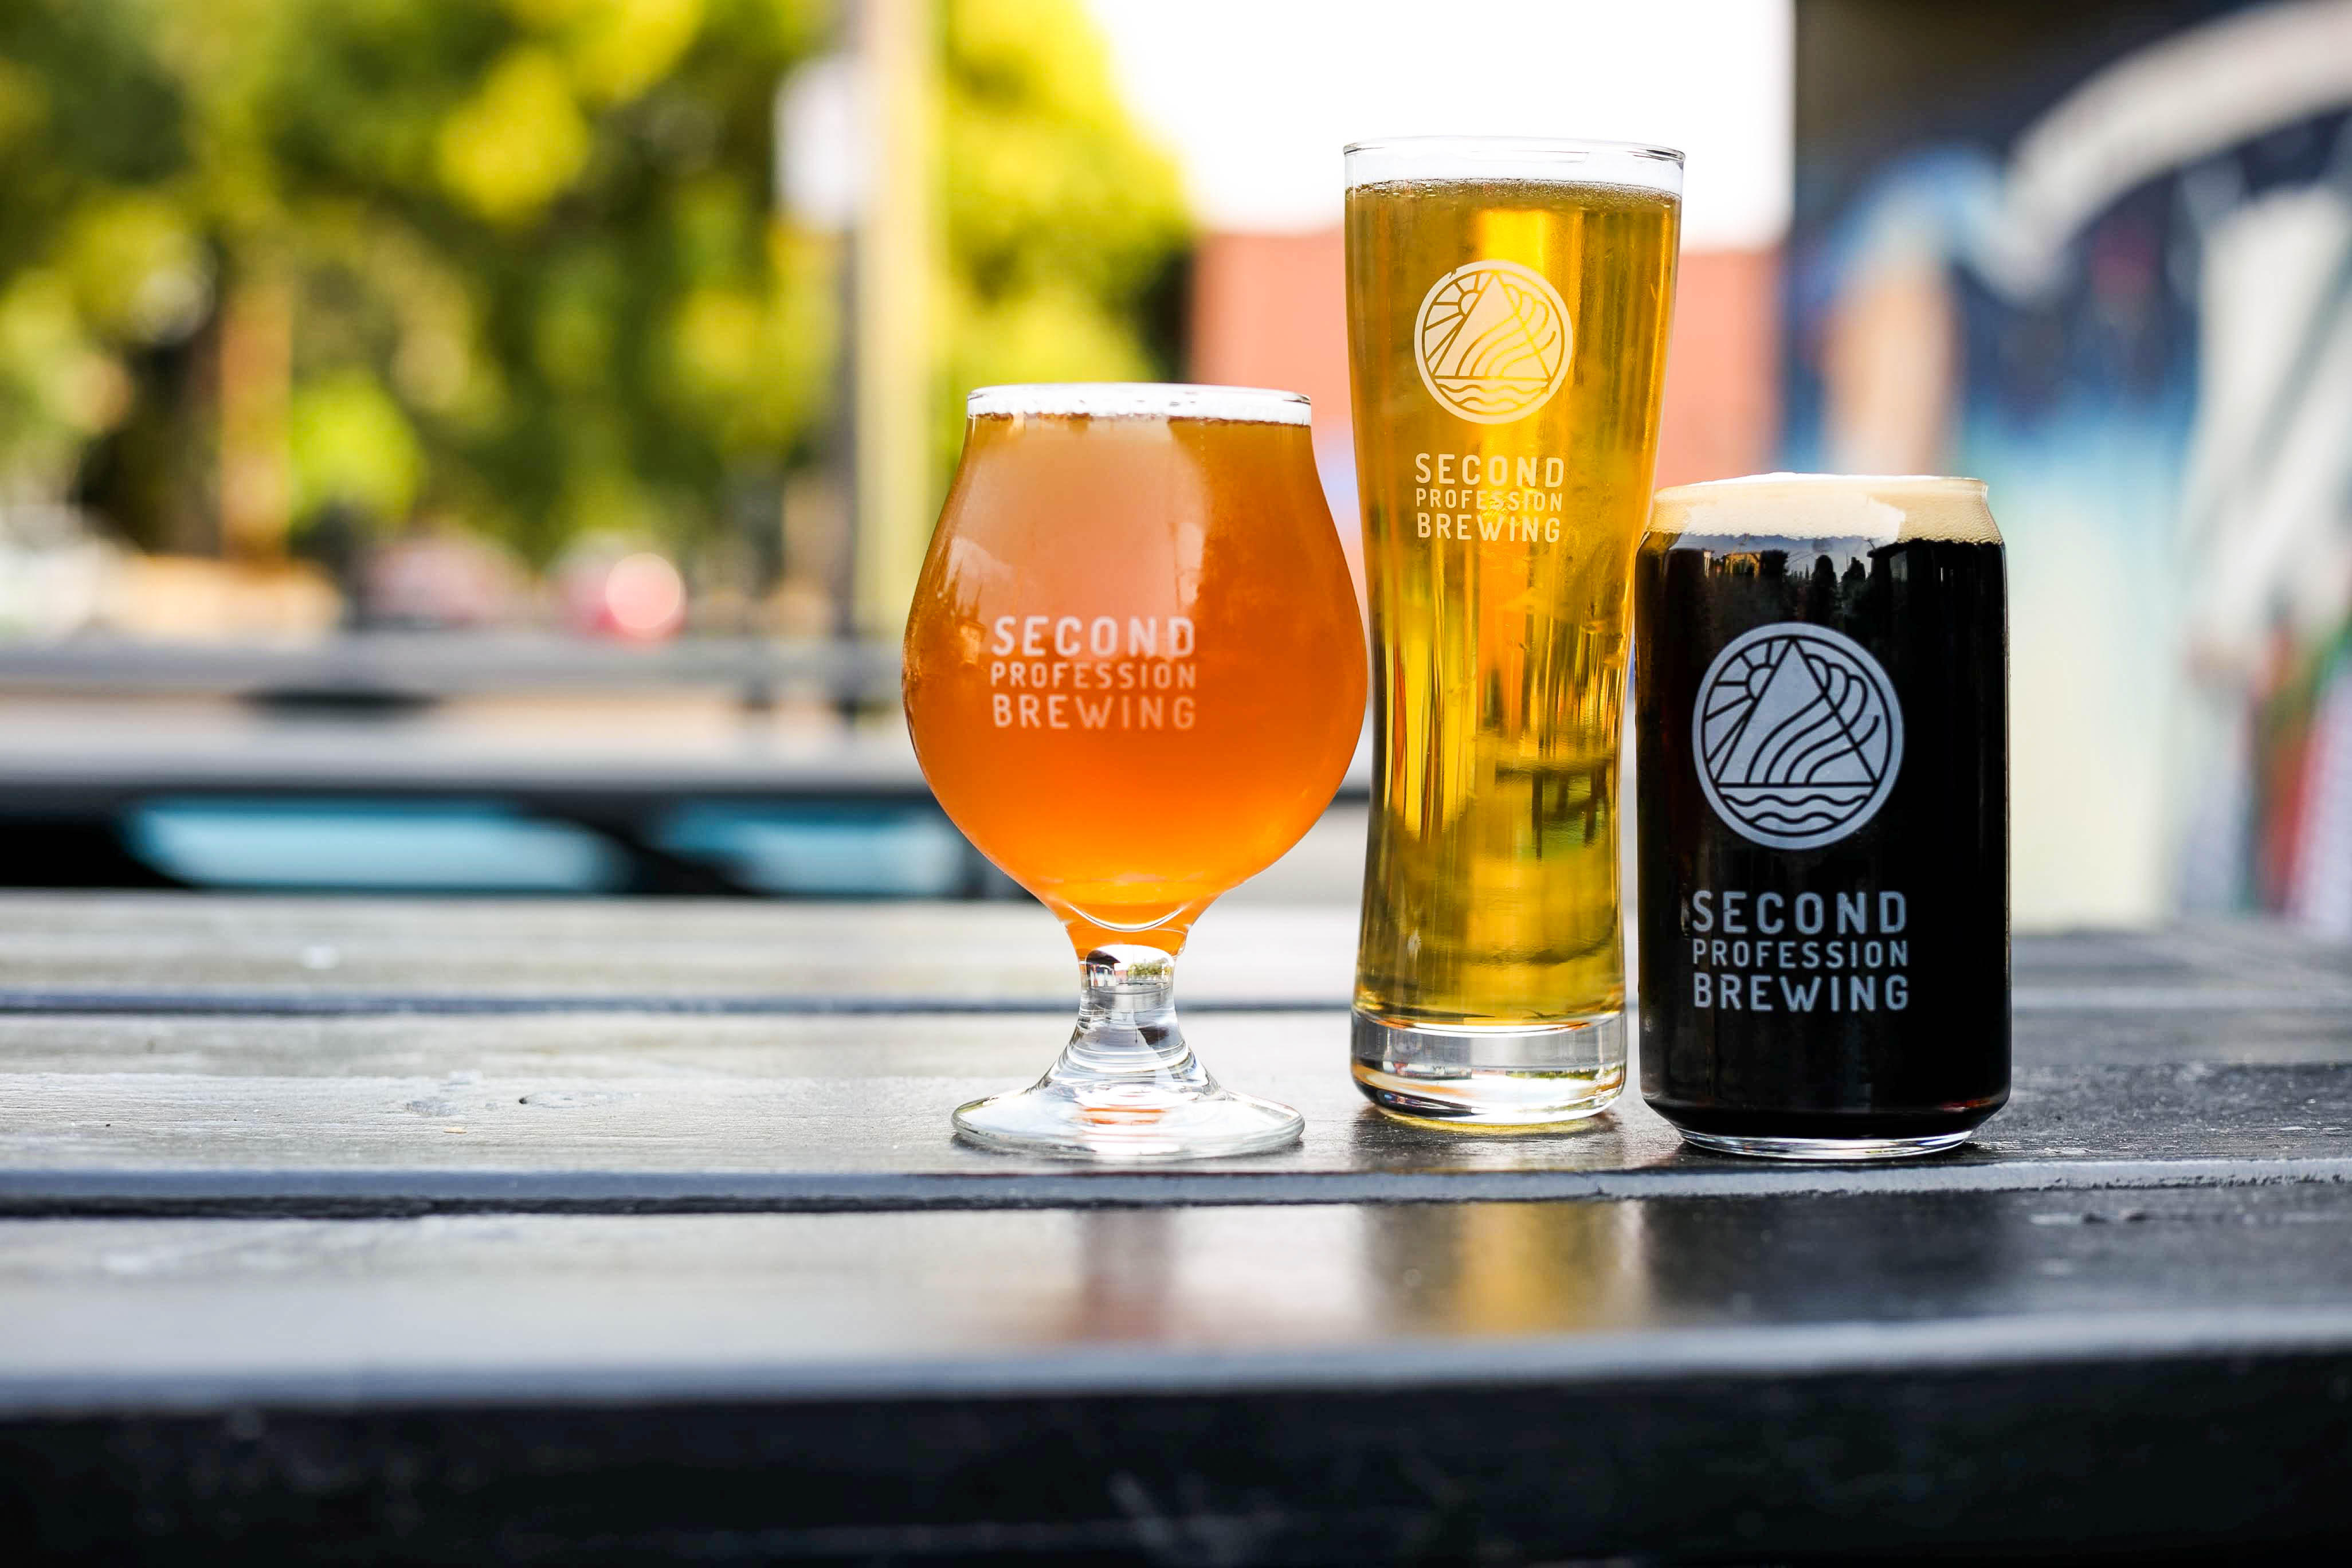 Second Profession Brewing image 4